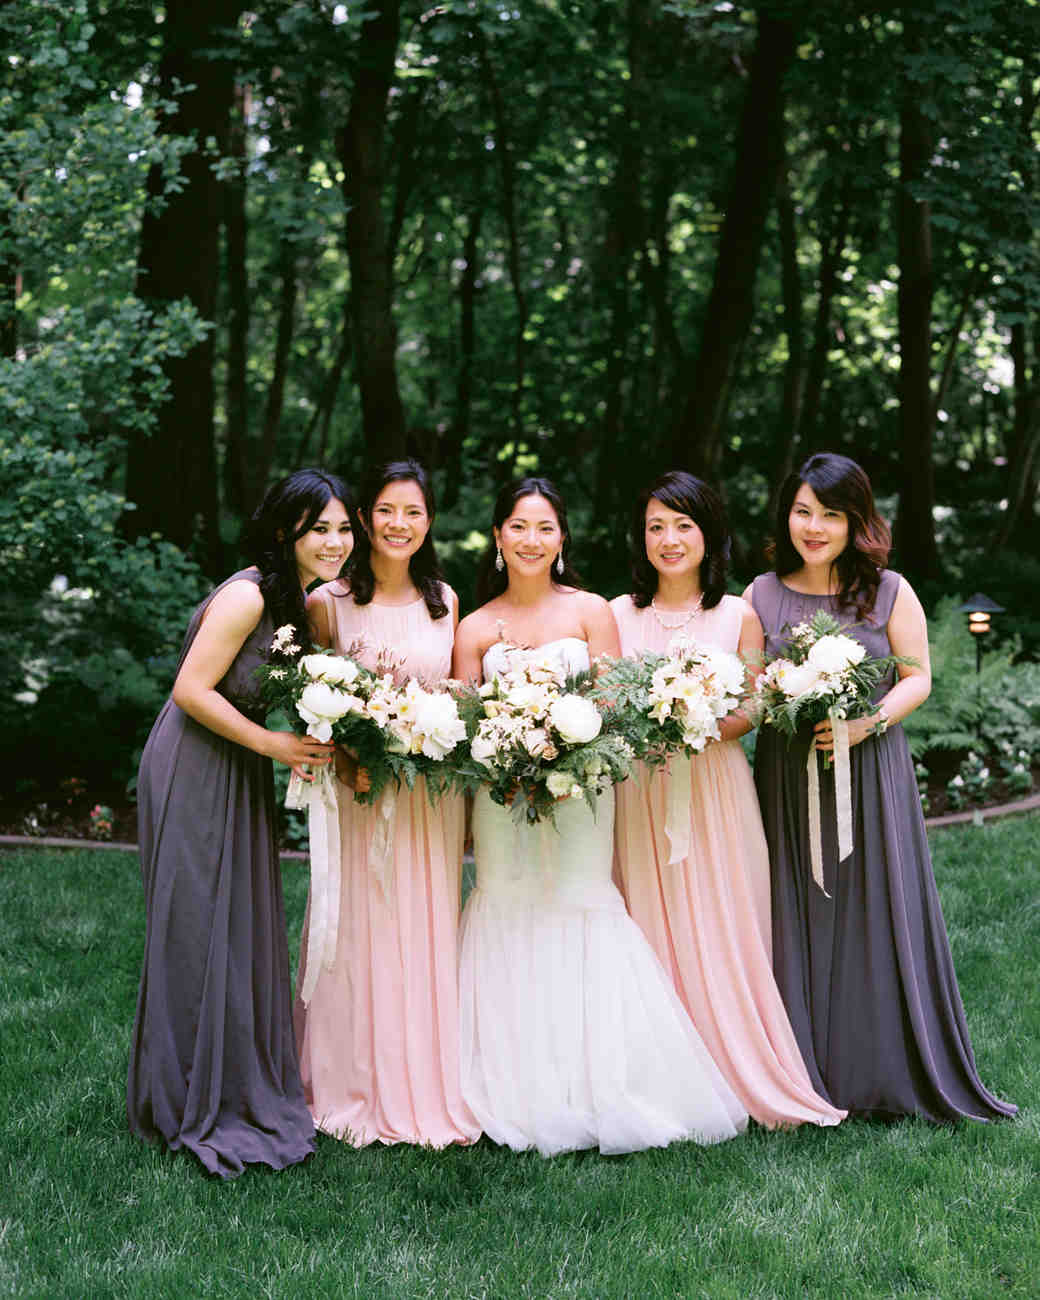 ally-adam-wedding-bridesmaids-034-s111818-0215.jpg